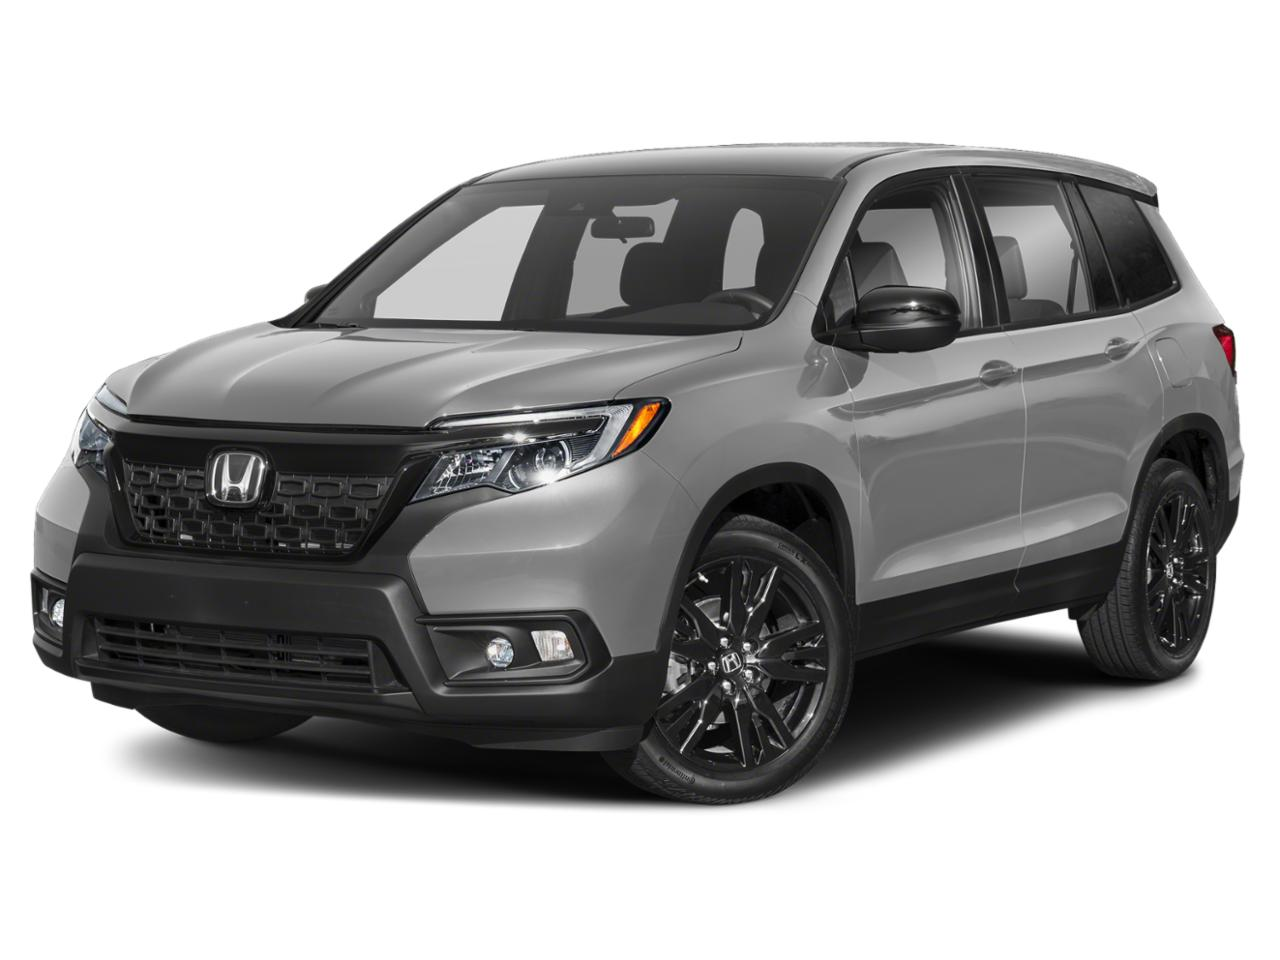 2020 Honda Passport Vehicle Photo in Oshkosh, WI 54904